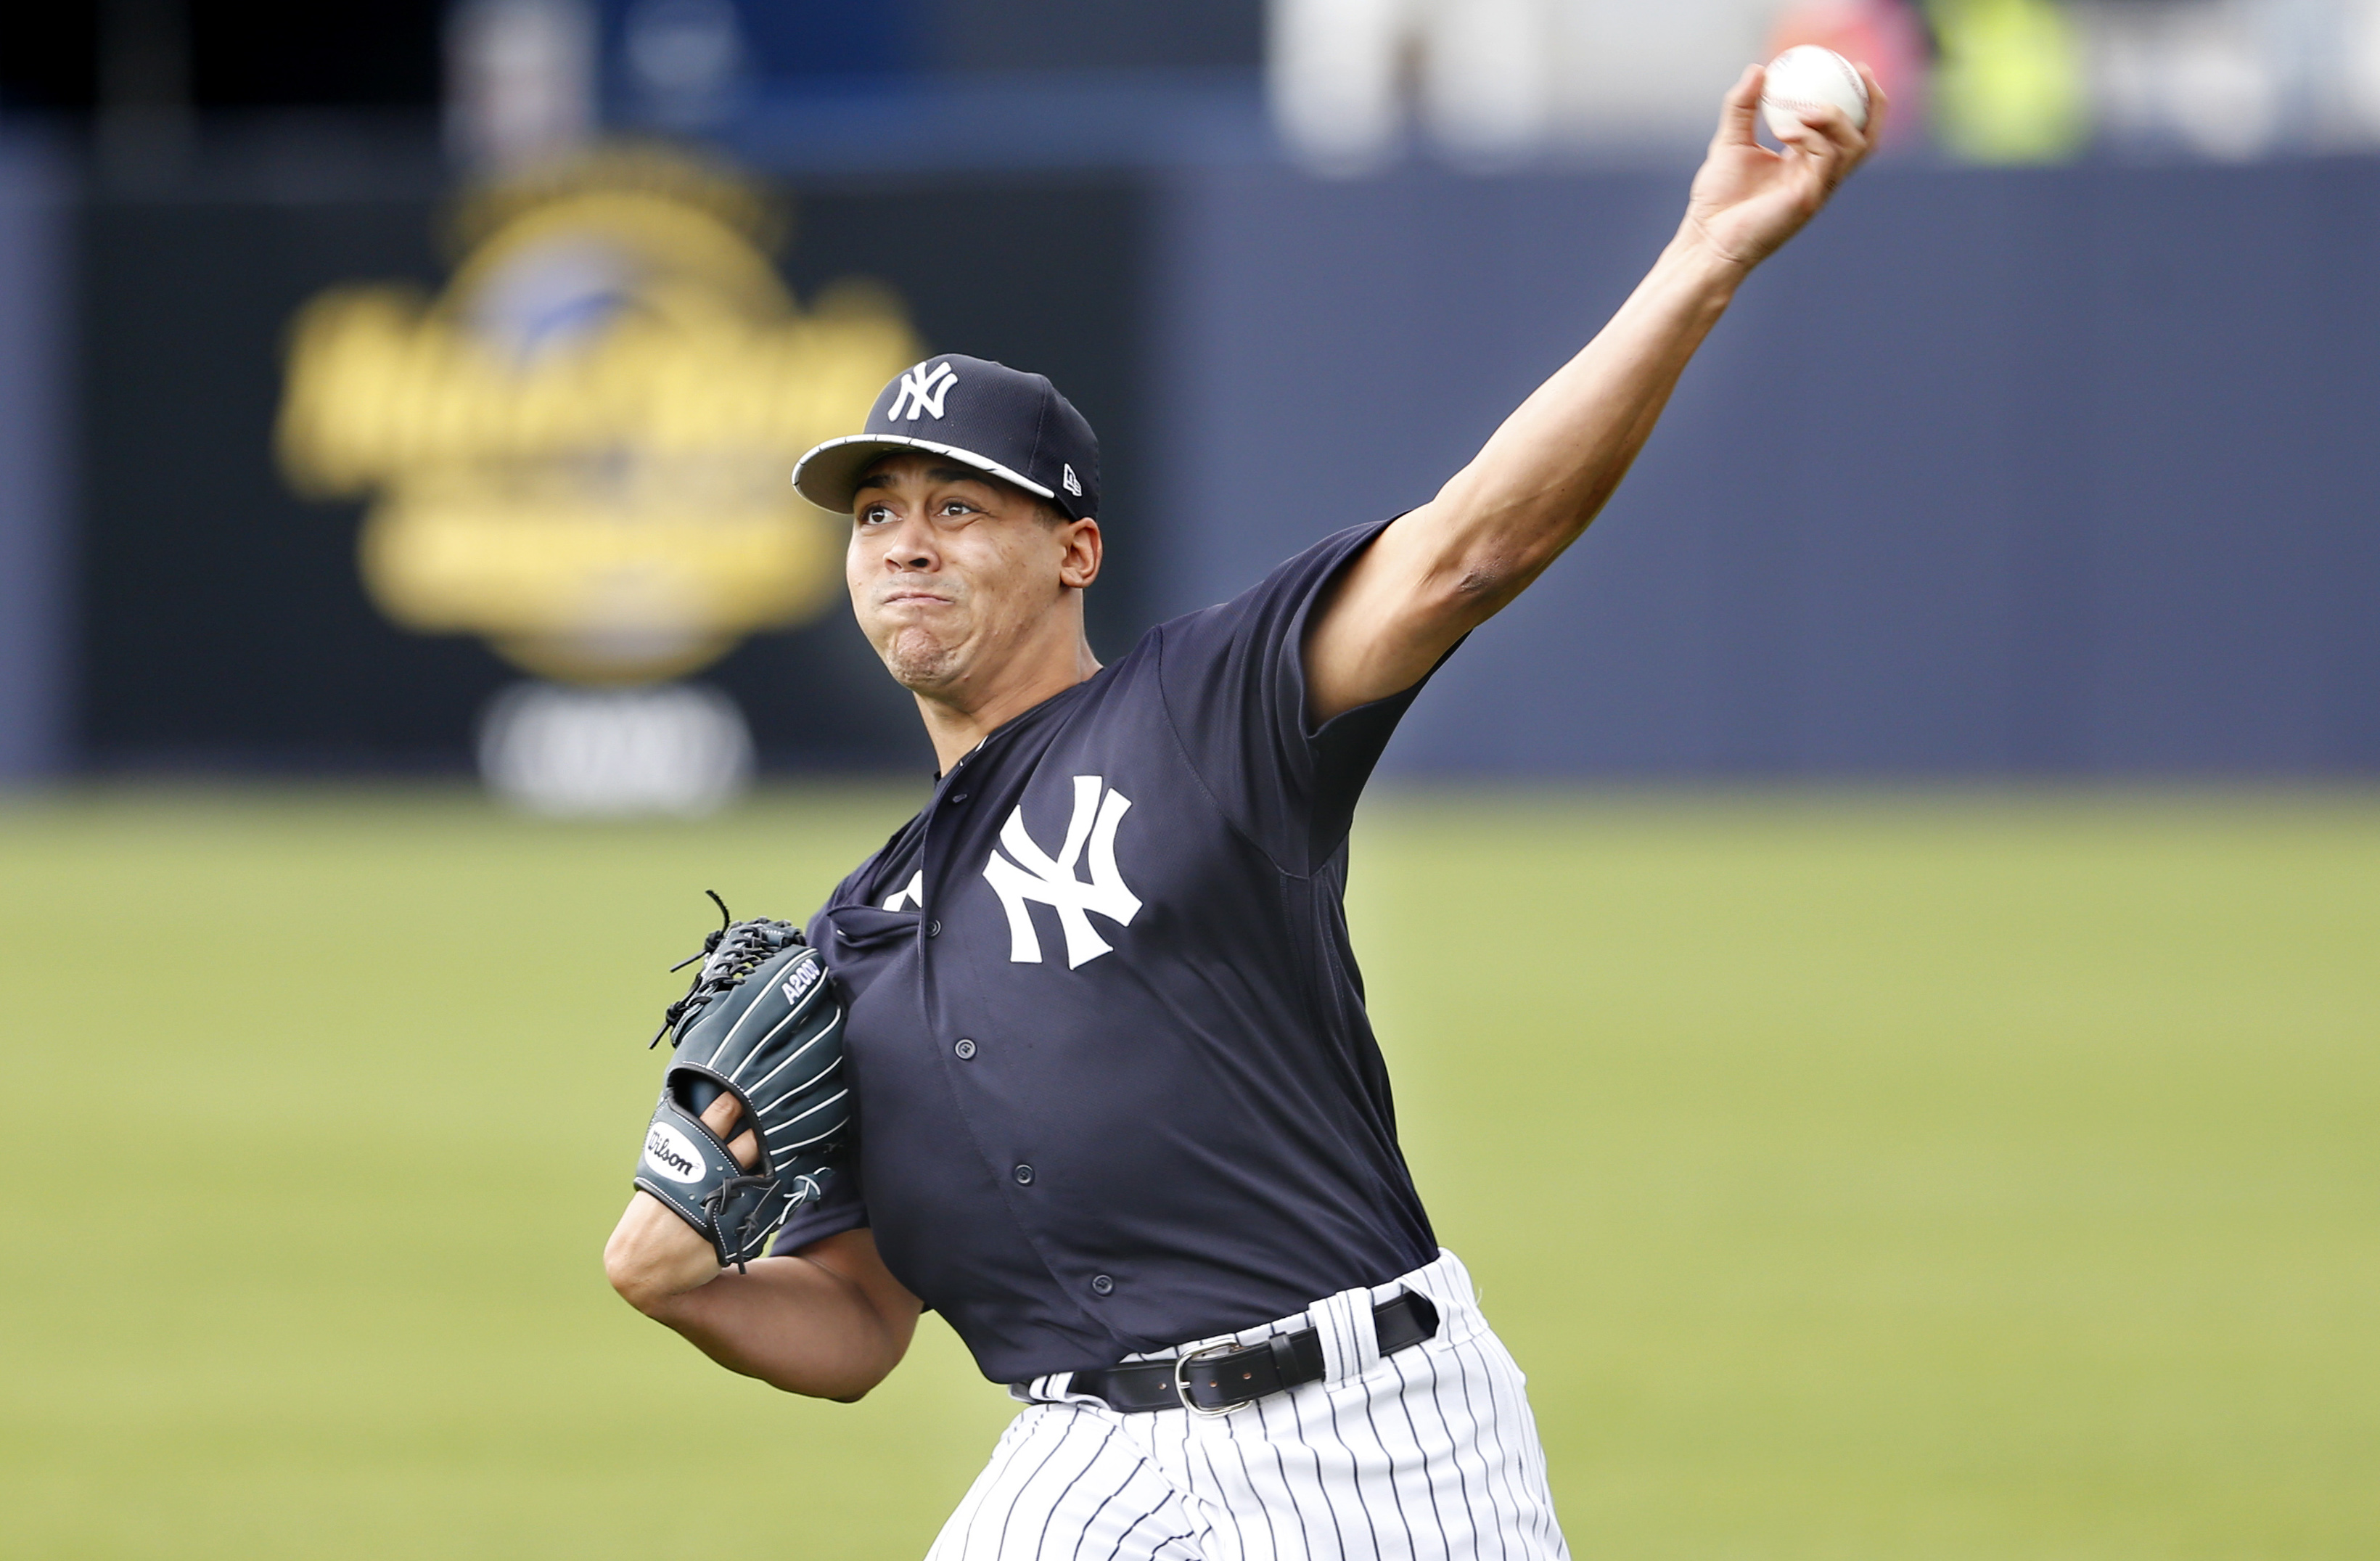 Feb 22, 2017; Tampa, FL, USA; New York Yankees relief pitcher Justus Sheffield (98) throws warmup pitches during a rain shortened  MLB spring training workouts at George M. Steinbrenner Field. Mandatory Credit: Reinhold Matay-USA TODAY Sports